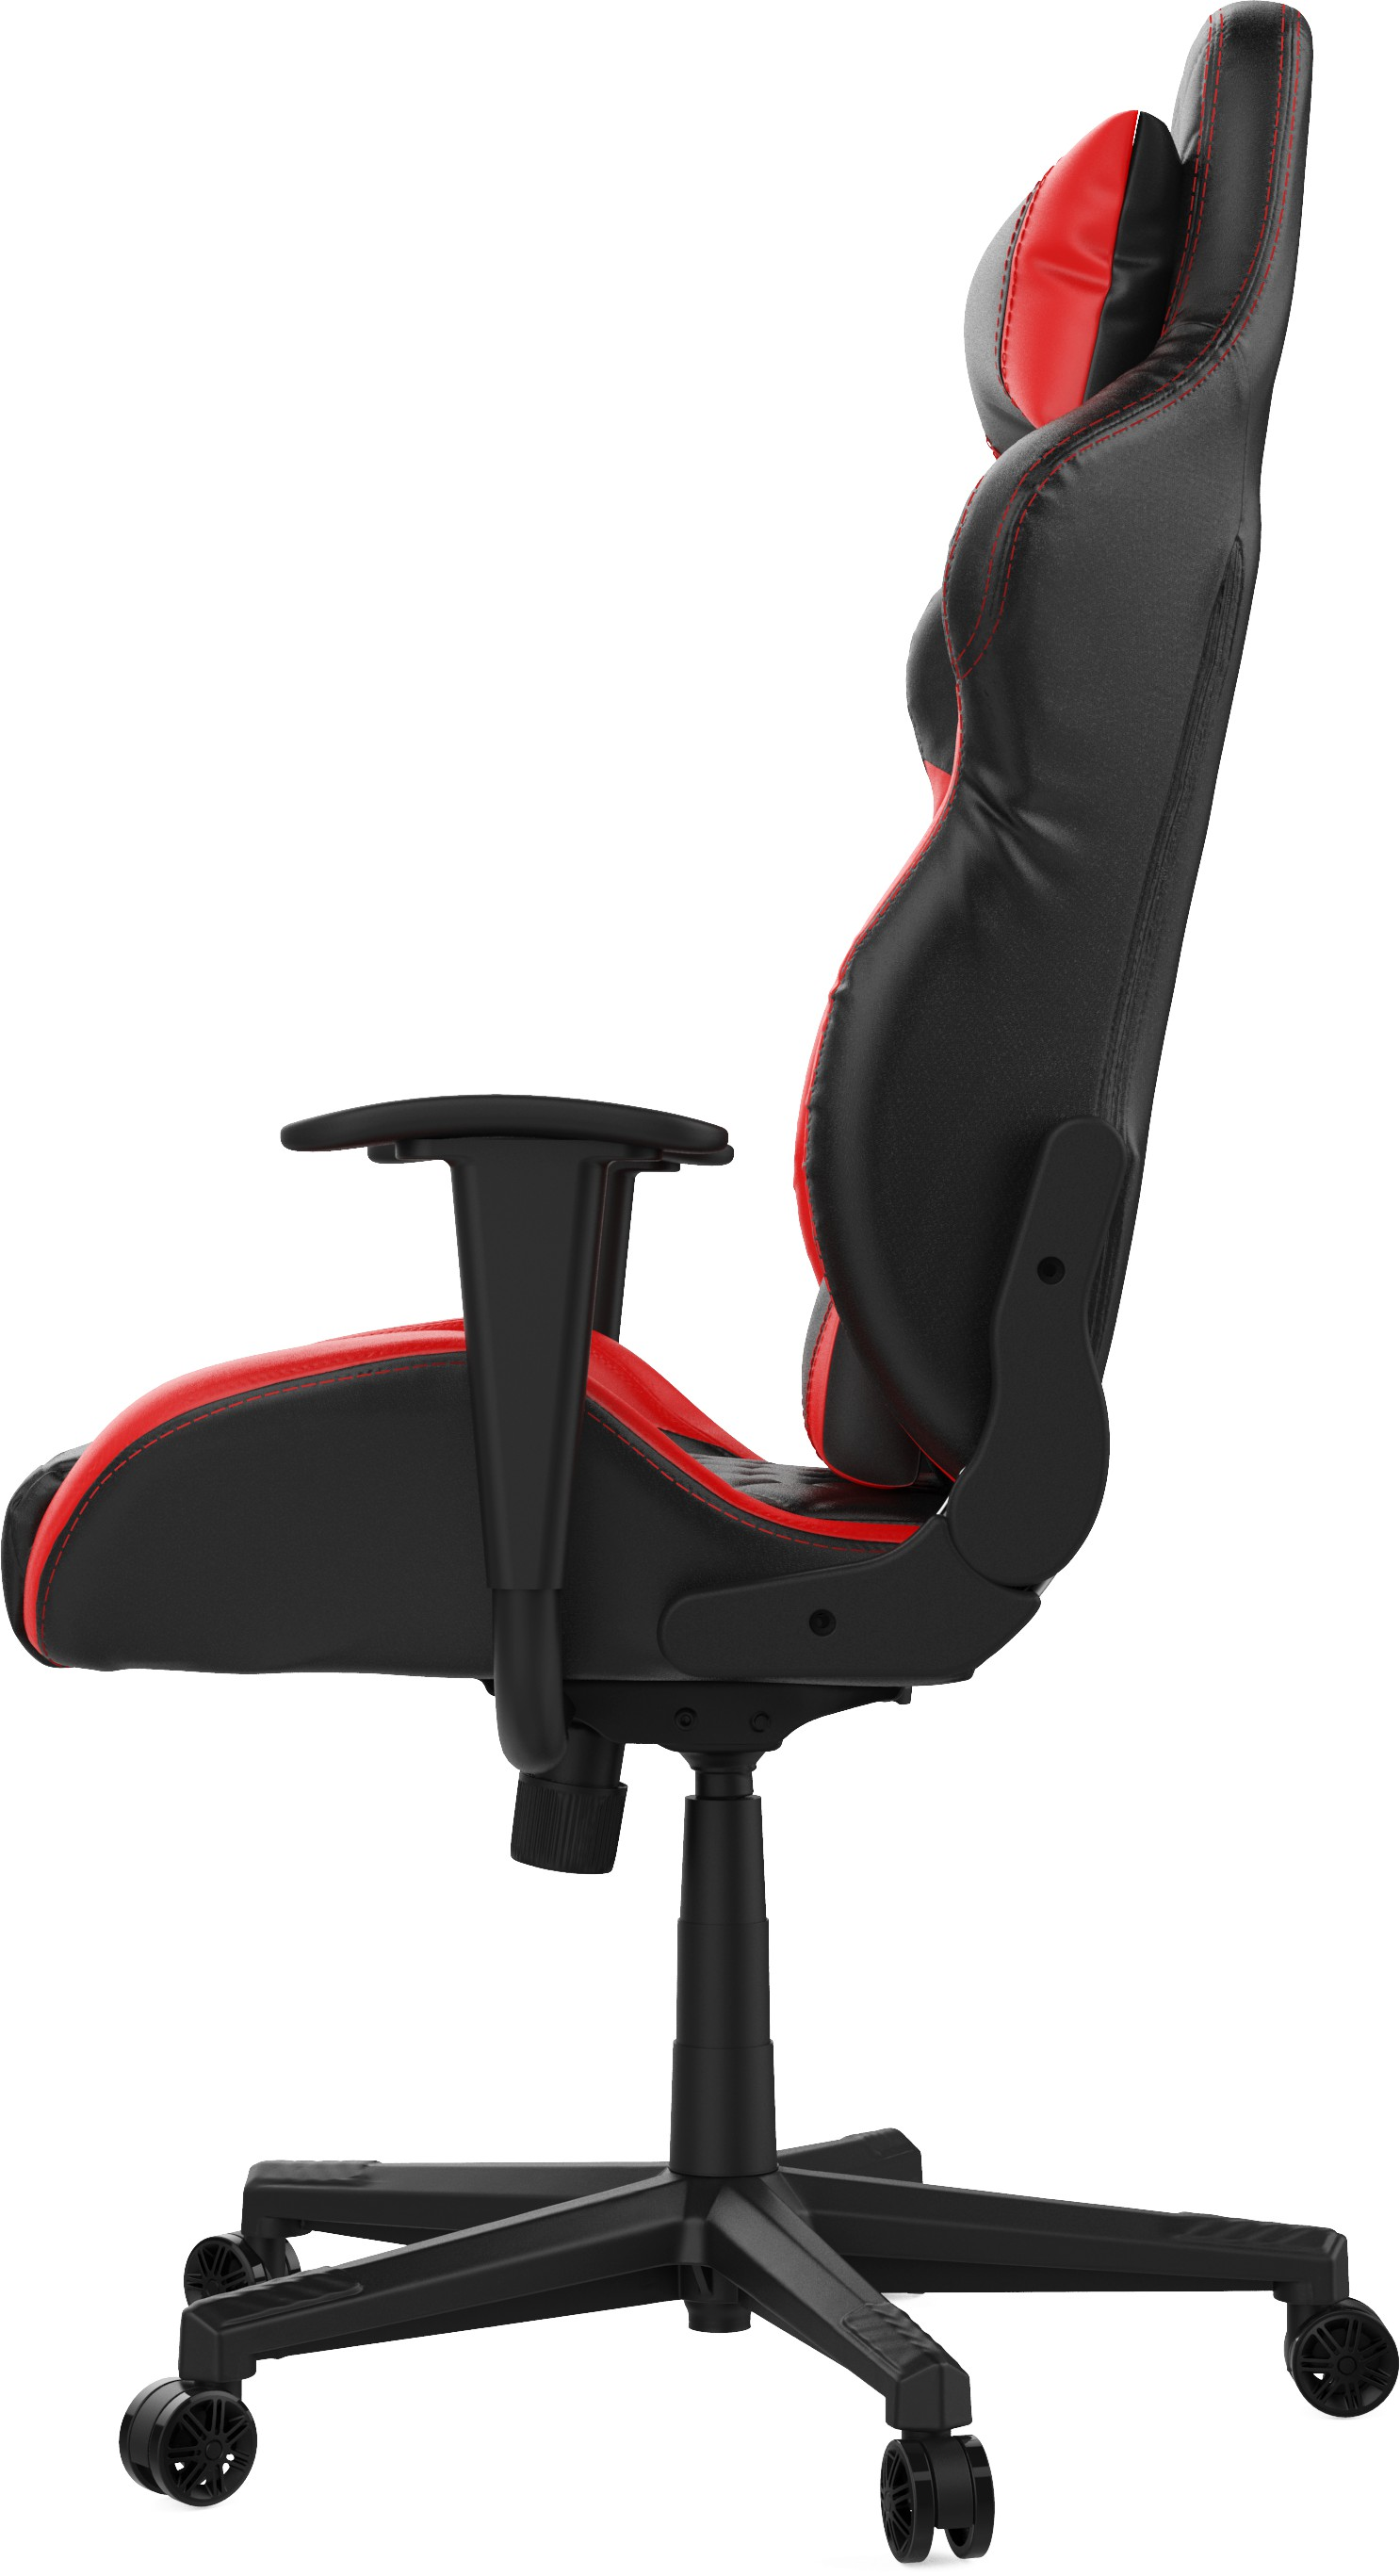 GAMDIAS ZELUS E1 L BR Gaming Chair